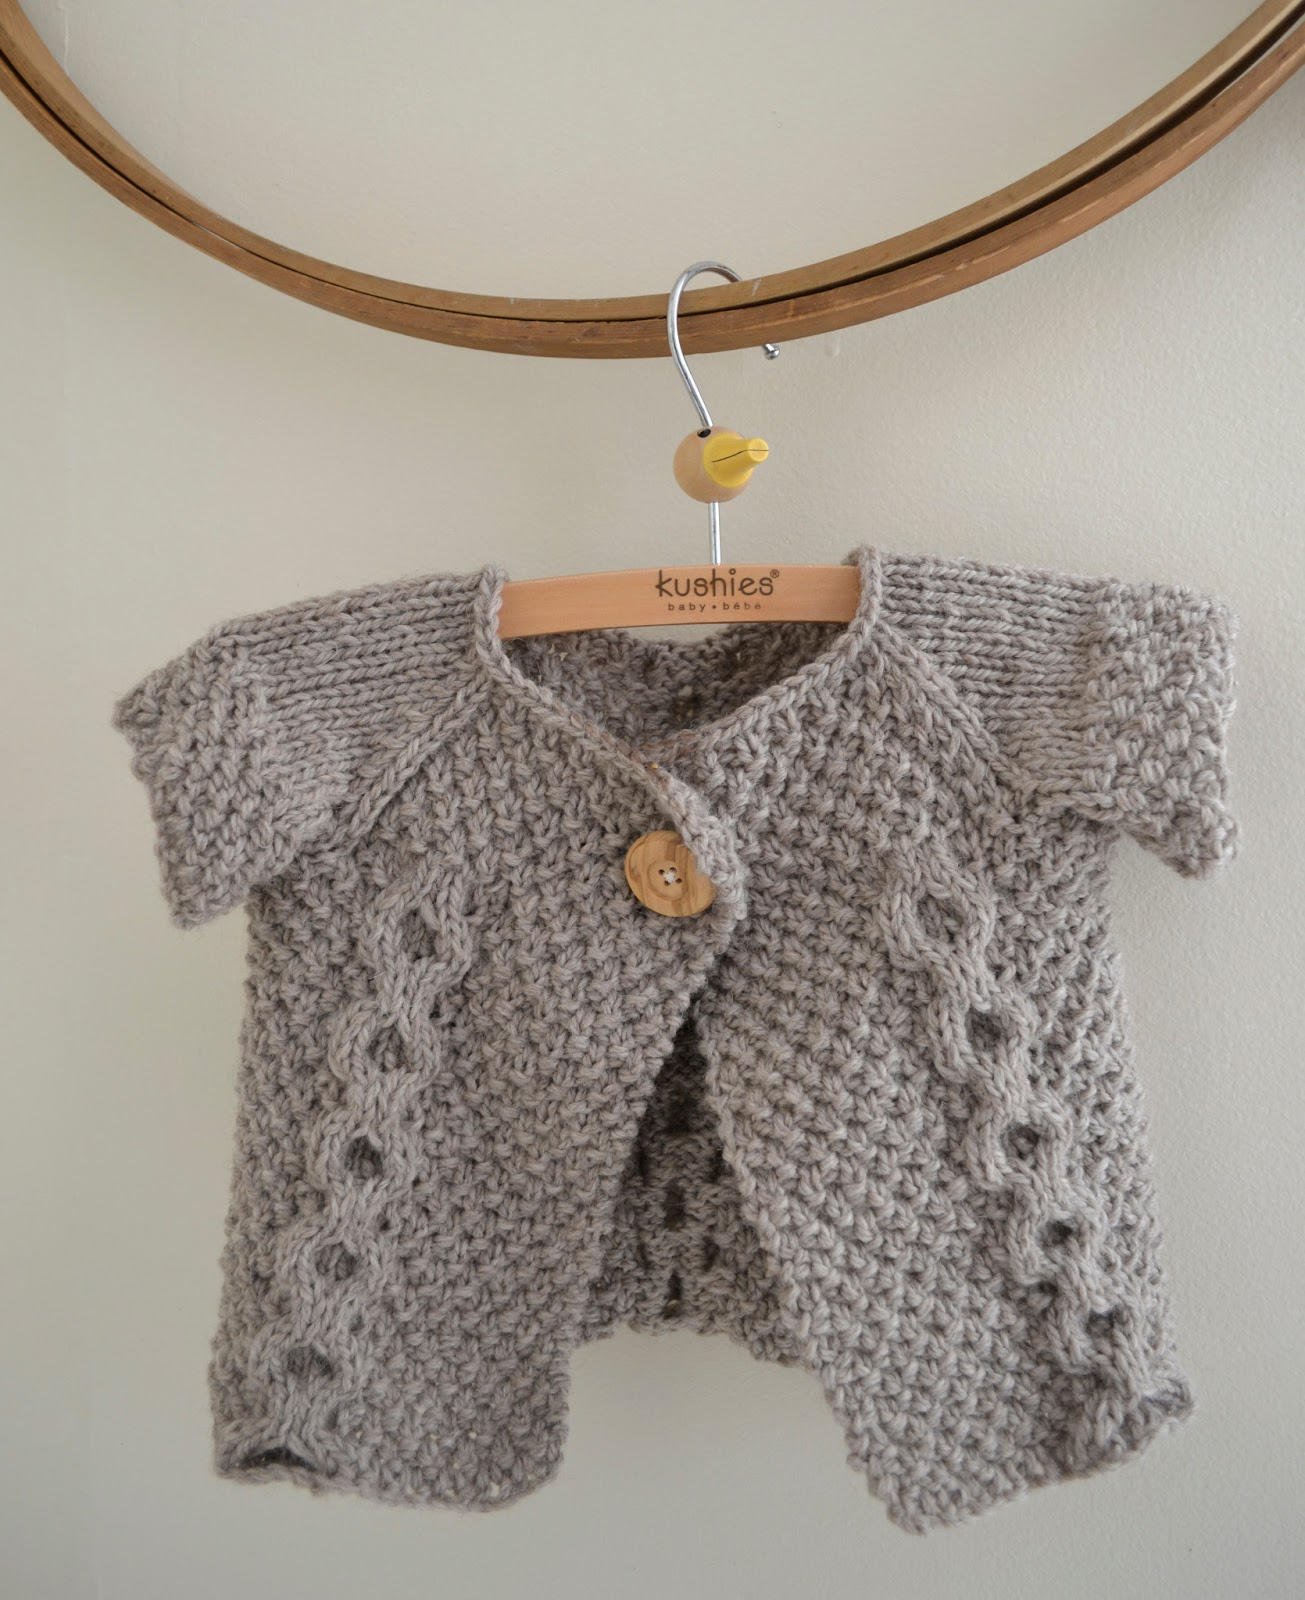 Jumper Patterns Knitting : Baby Sweater Cable Knitting Pattern - Long Sweater Jacket